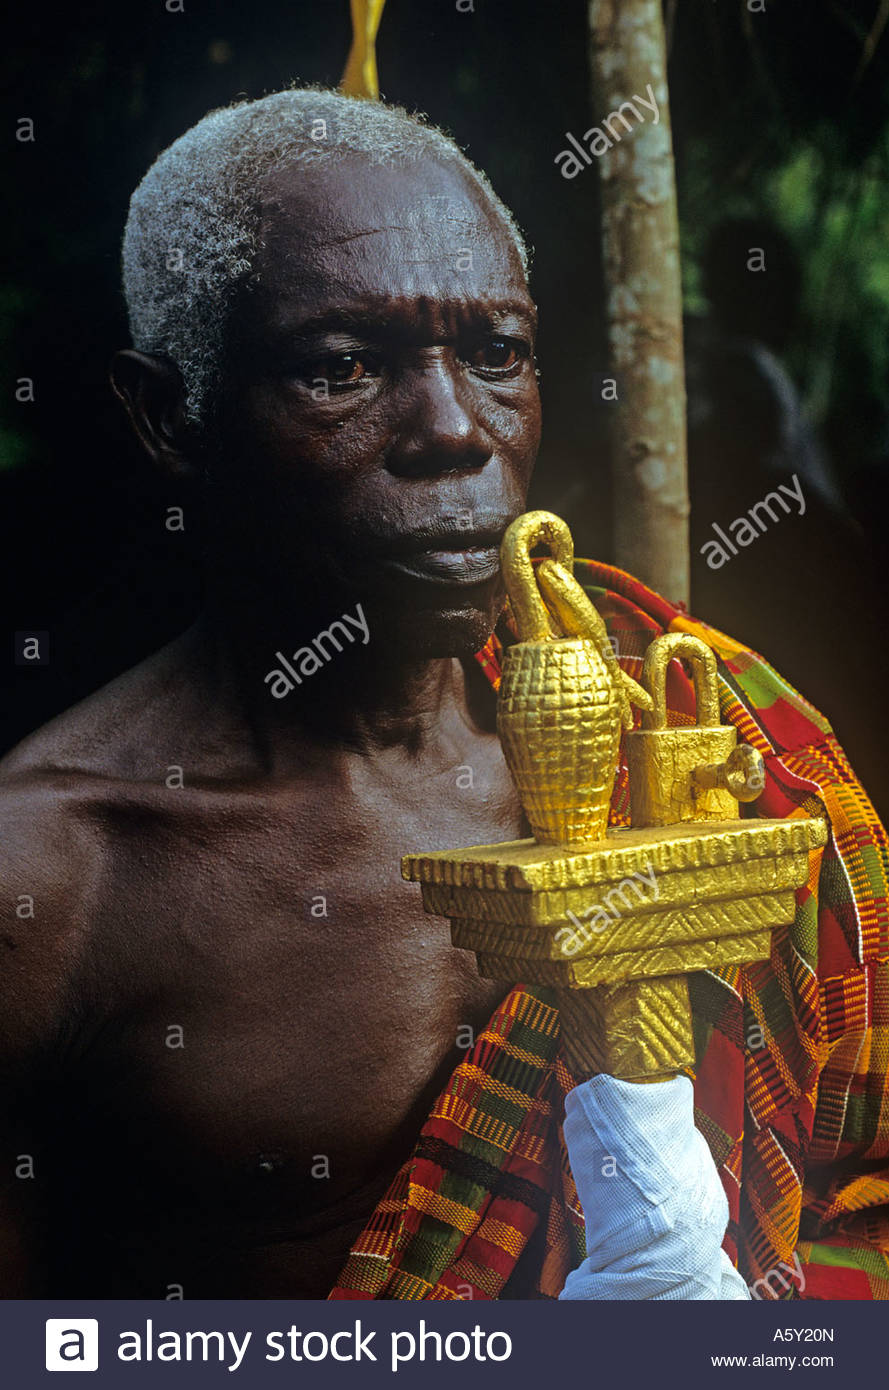 Ashante Chief s spoksman or Okyeam relays messages using poetic language between the Chief and his tribal followers - Stock Image